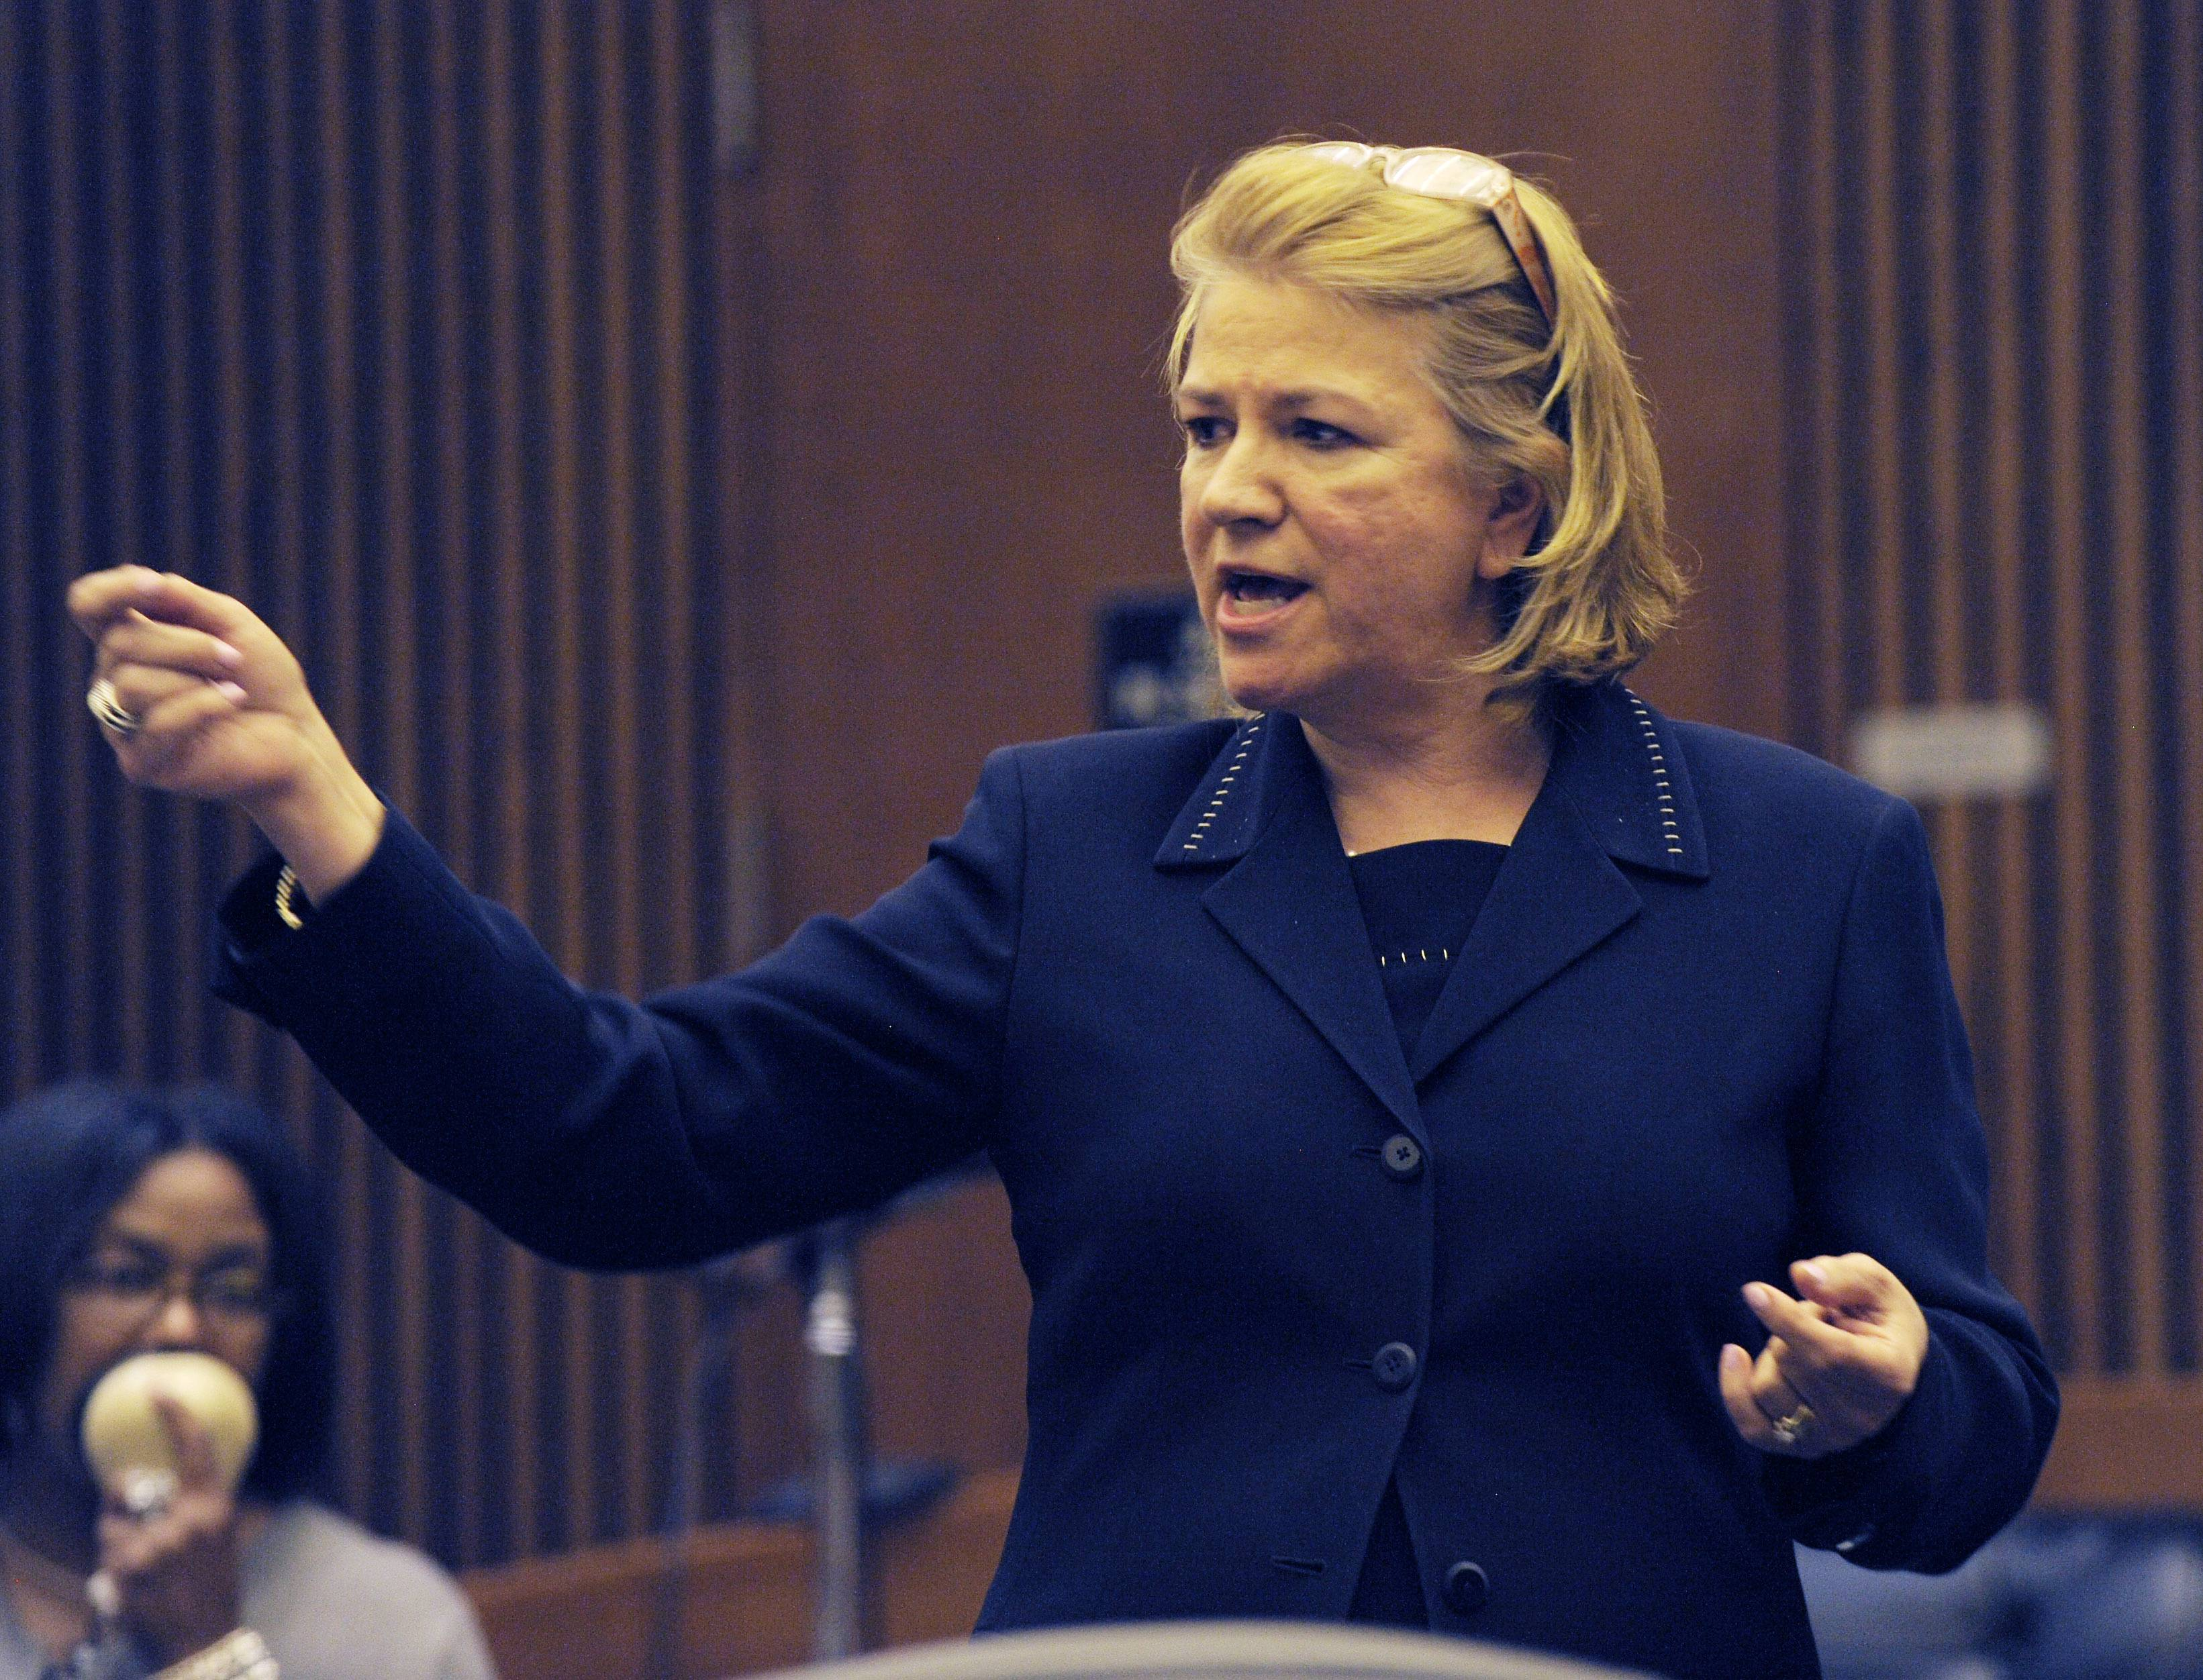 Asst. Prosecutor, Athina Siringas speaks during closing arguments in the Theodore Wafer case Wednesday, Aug. 6, 2014, in Detroit. The case of Wafer, a suburban Detroit homeowner who opened his front door and blasted an unarmed woman on his porch, has gone to the jury. Wafer is charged with second-degree murder and manslaughter in the death of 19-year-old Renisha McBride.